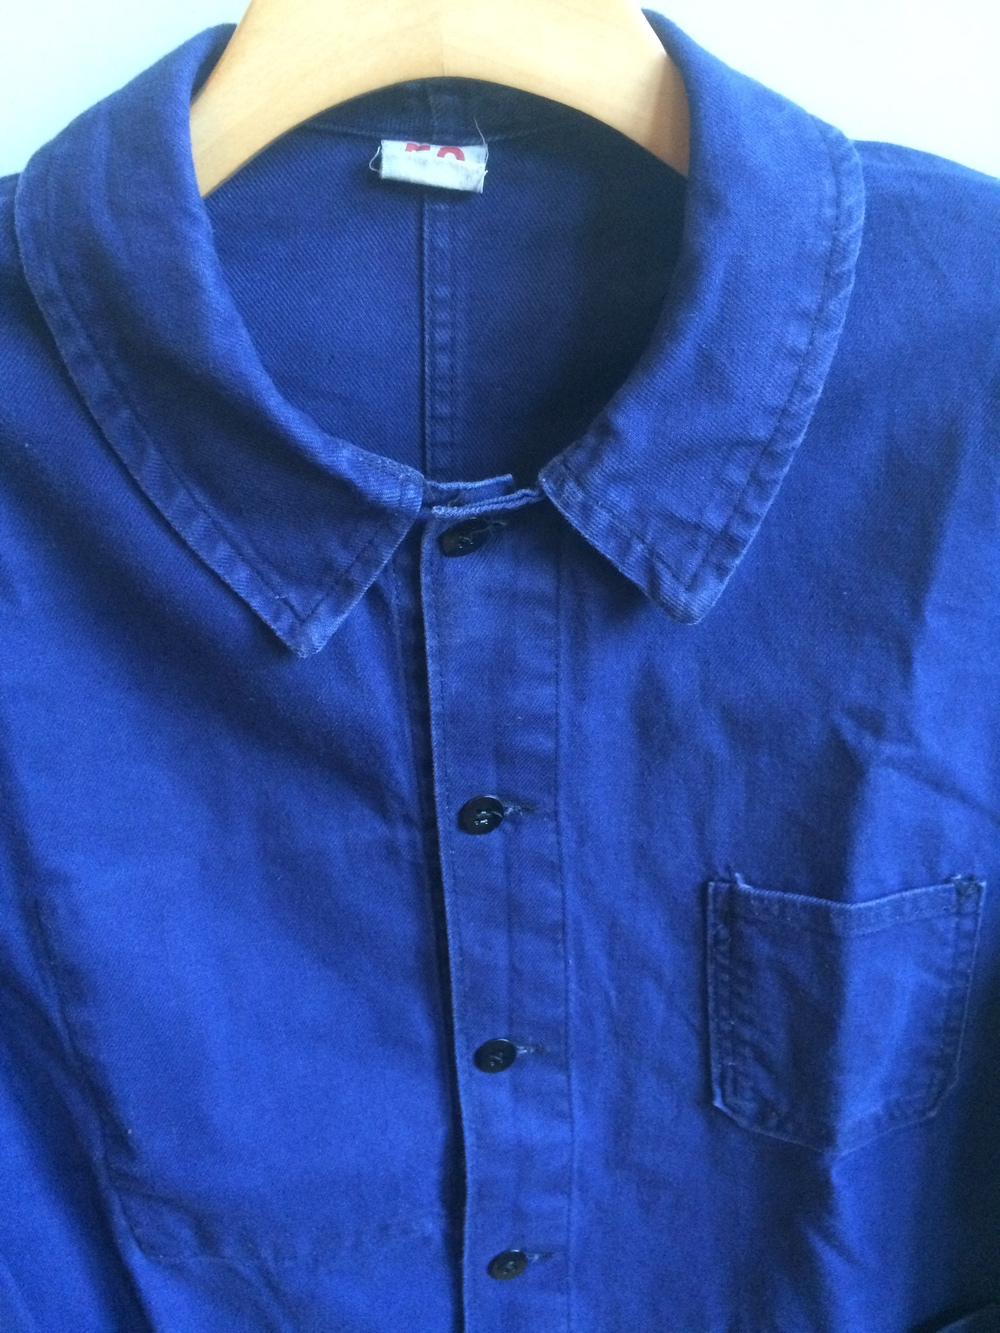 Vintage, unbranded, Sanforized workshirt from Spitalfields market.